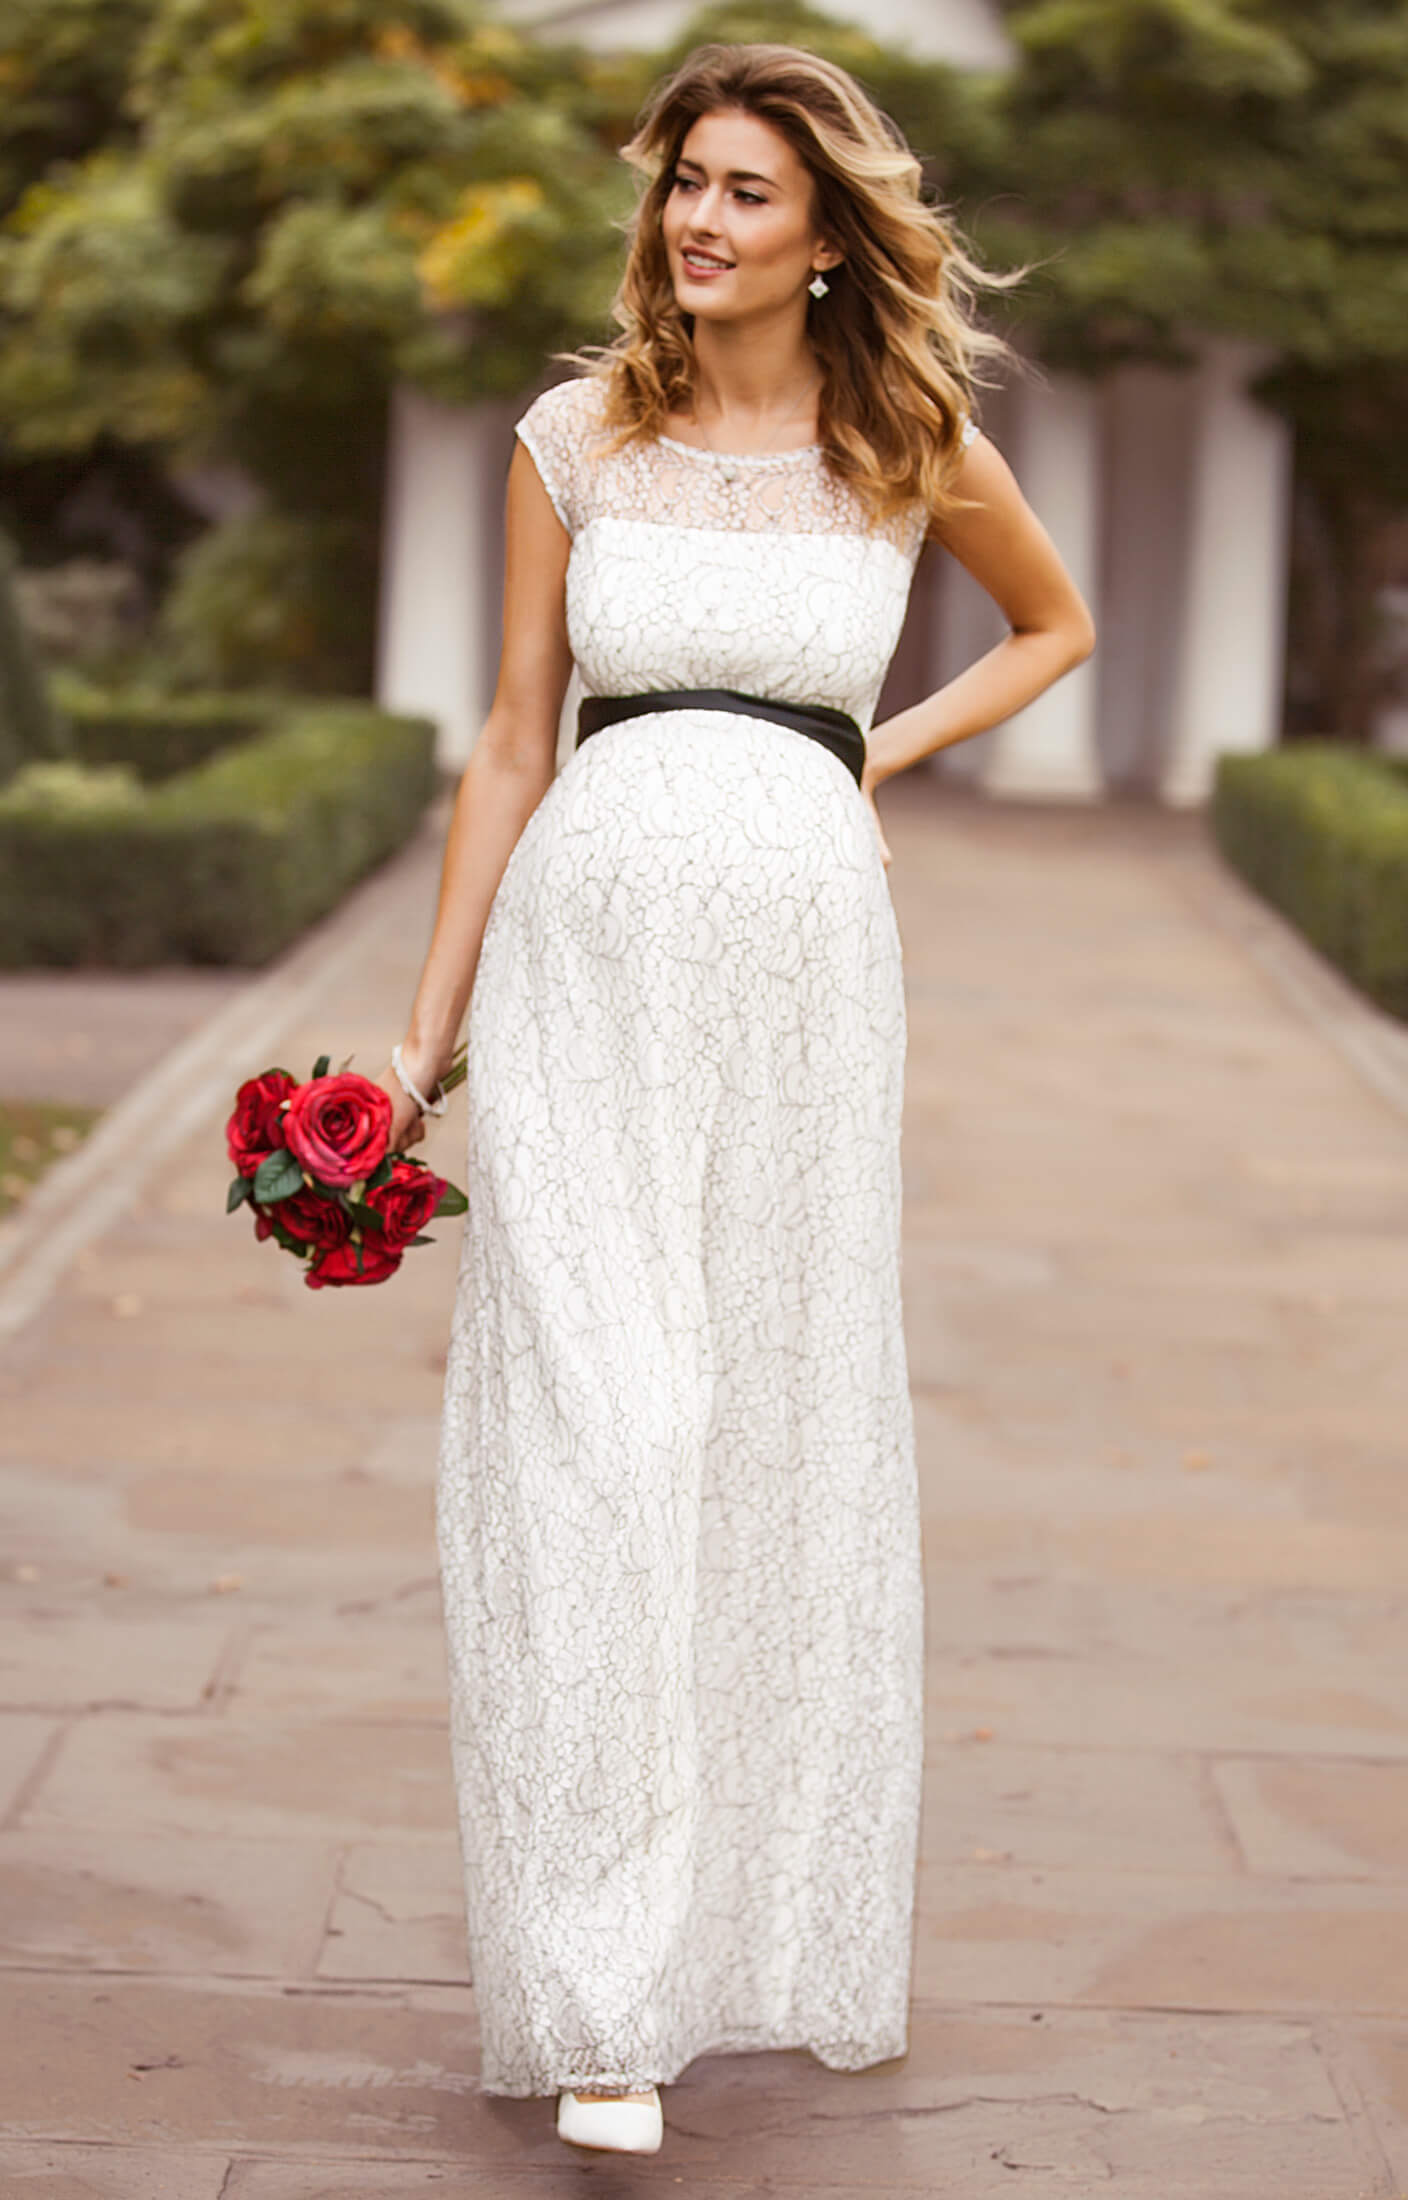 Daisy maternity wedding gown long mono lace maternity for Wedding guest pregnancy dresses